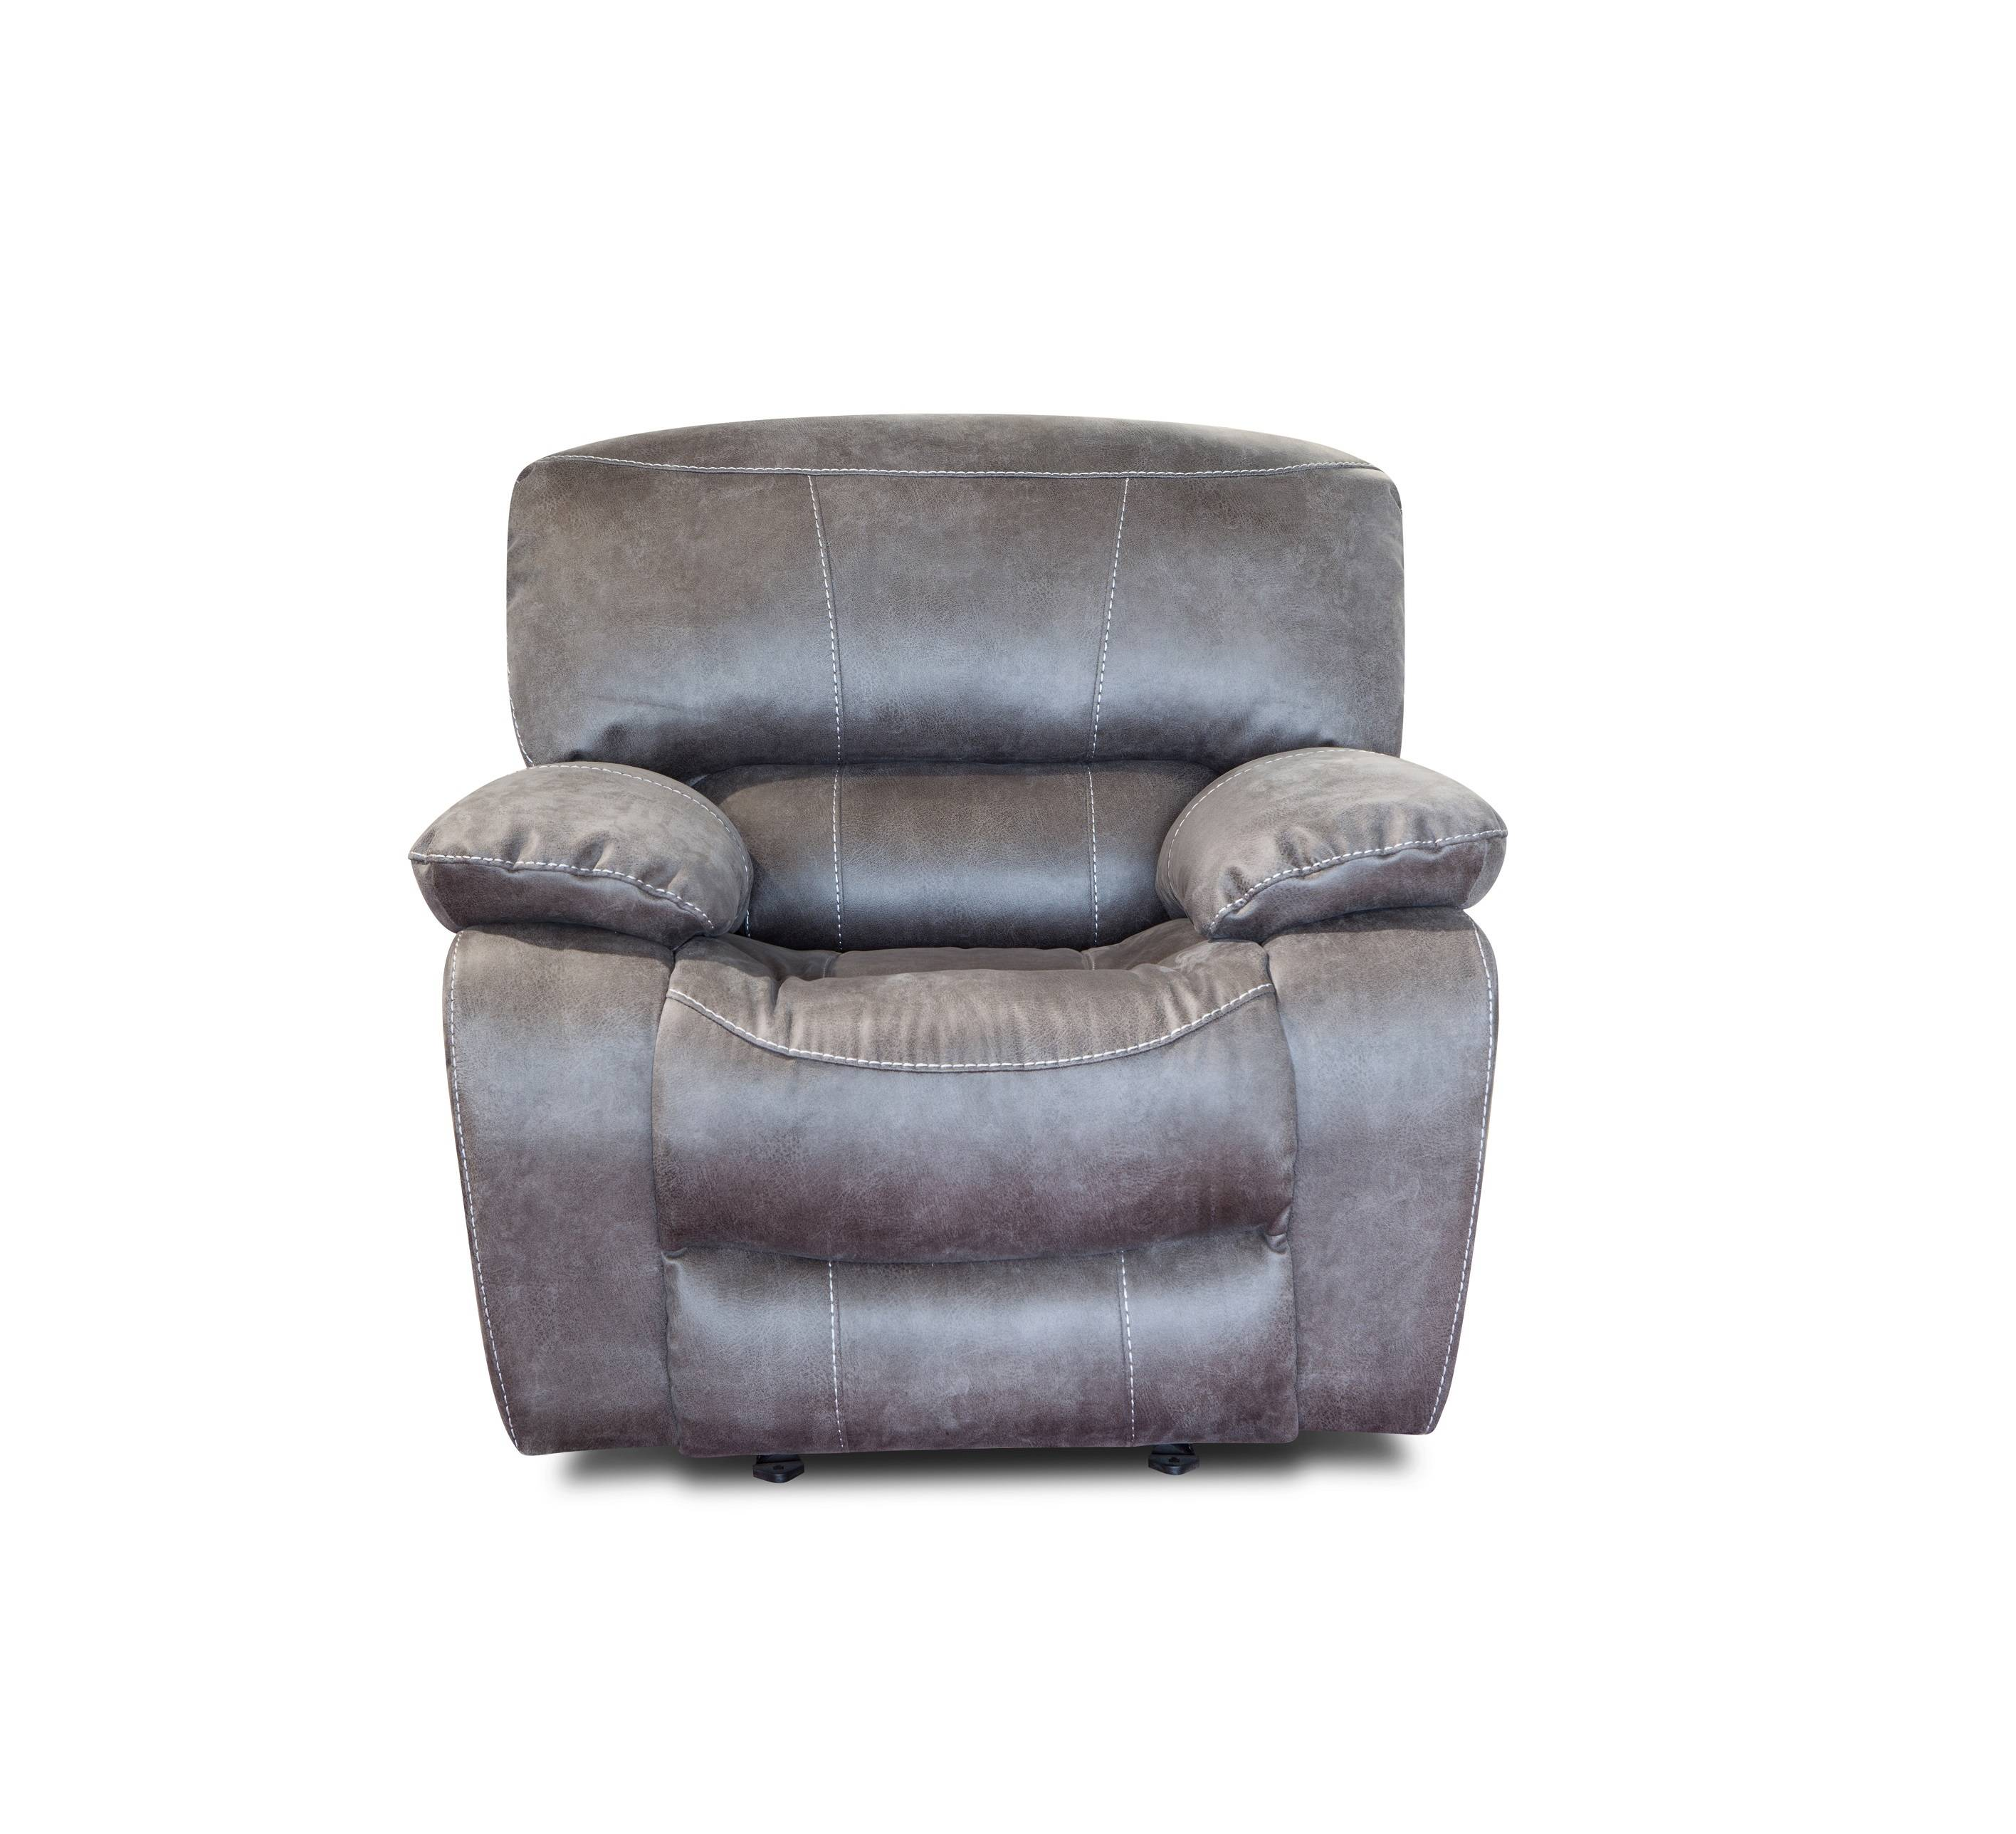 New design leisure leather chair,lazy boy recliner chair Featured Image